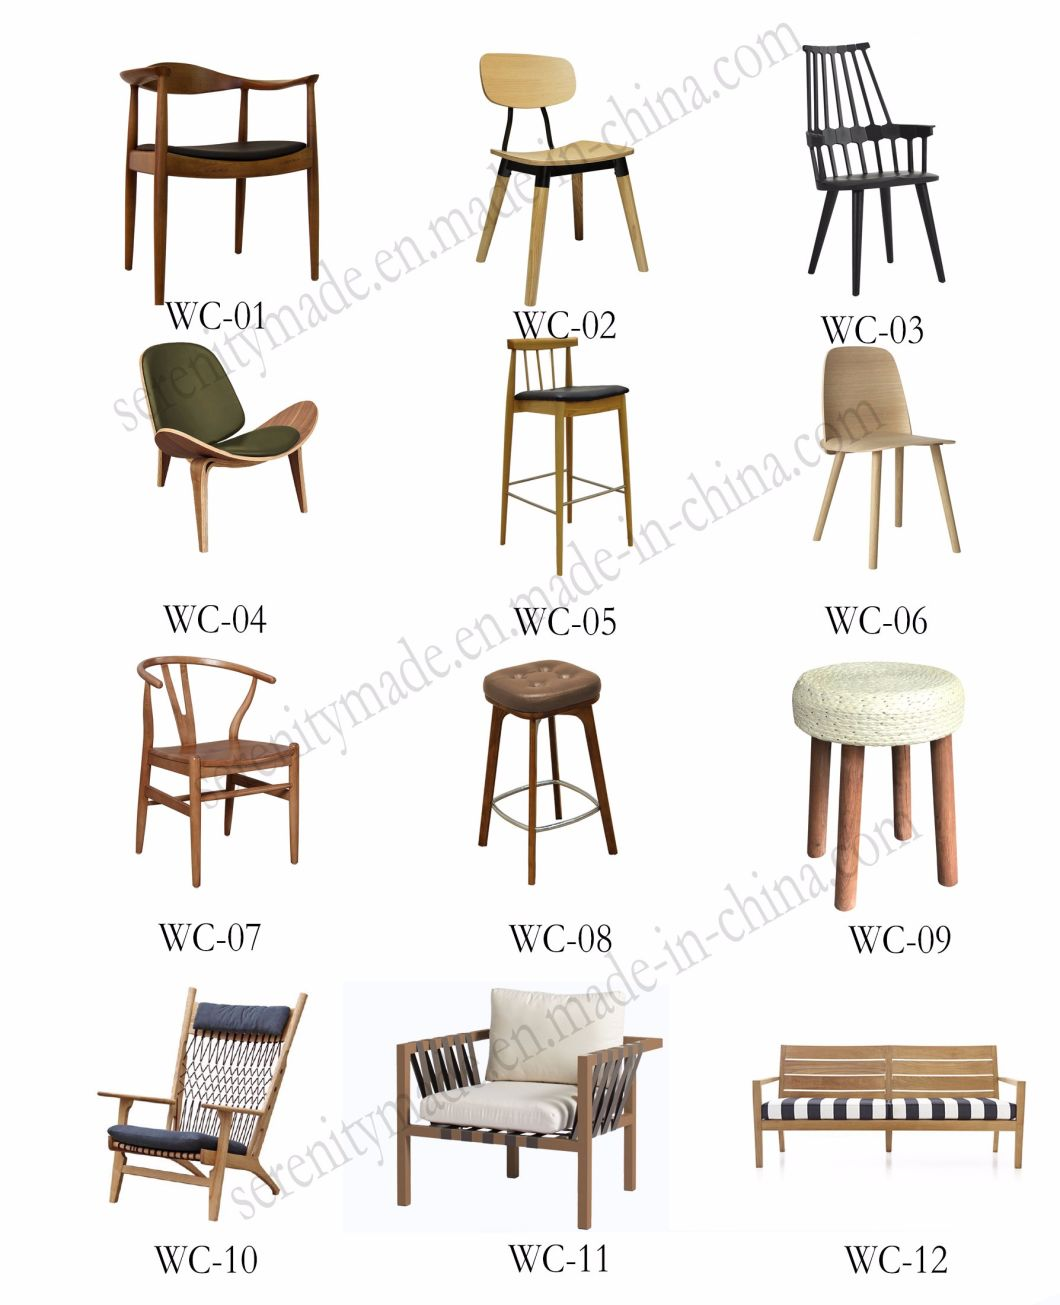 Incredible China Wooden Furniture Restaurant Bistro Cafe Black And White Stripe Fabric Seat Wooden Bench Machost Co Dining Chair Design Ideas Machostcouk